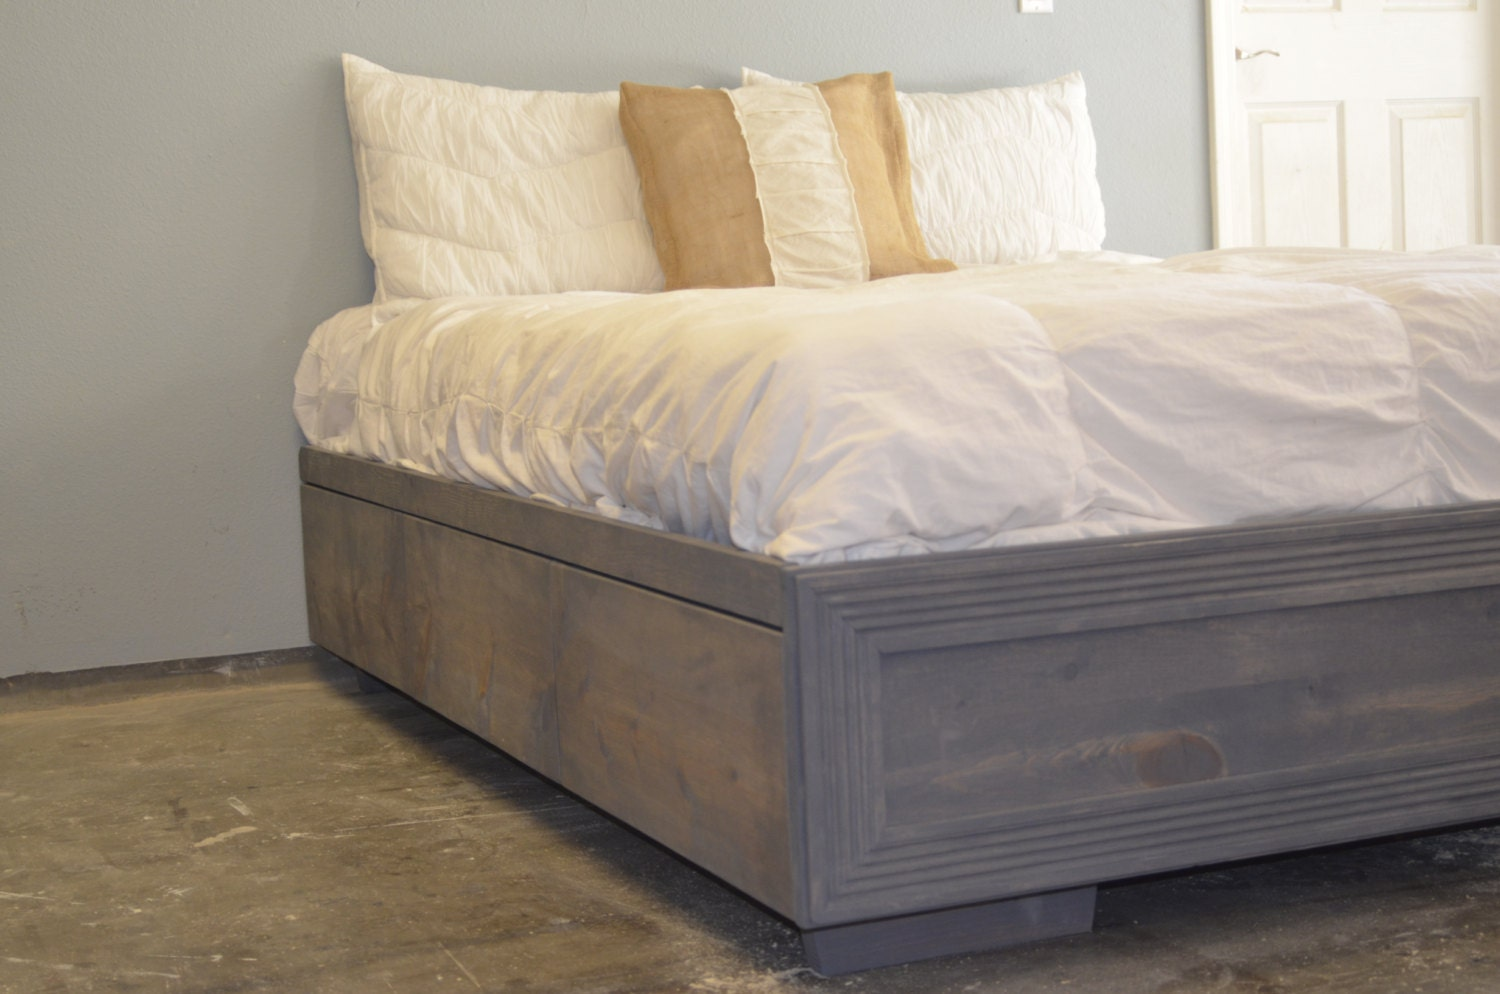 How to raise a bed frame off the floor easy diy platform for Raise bed off floor